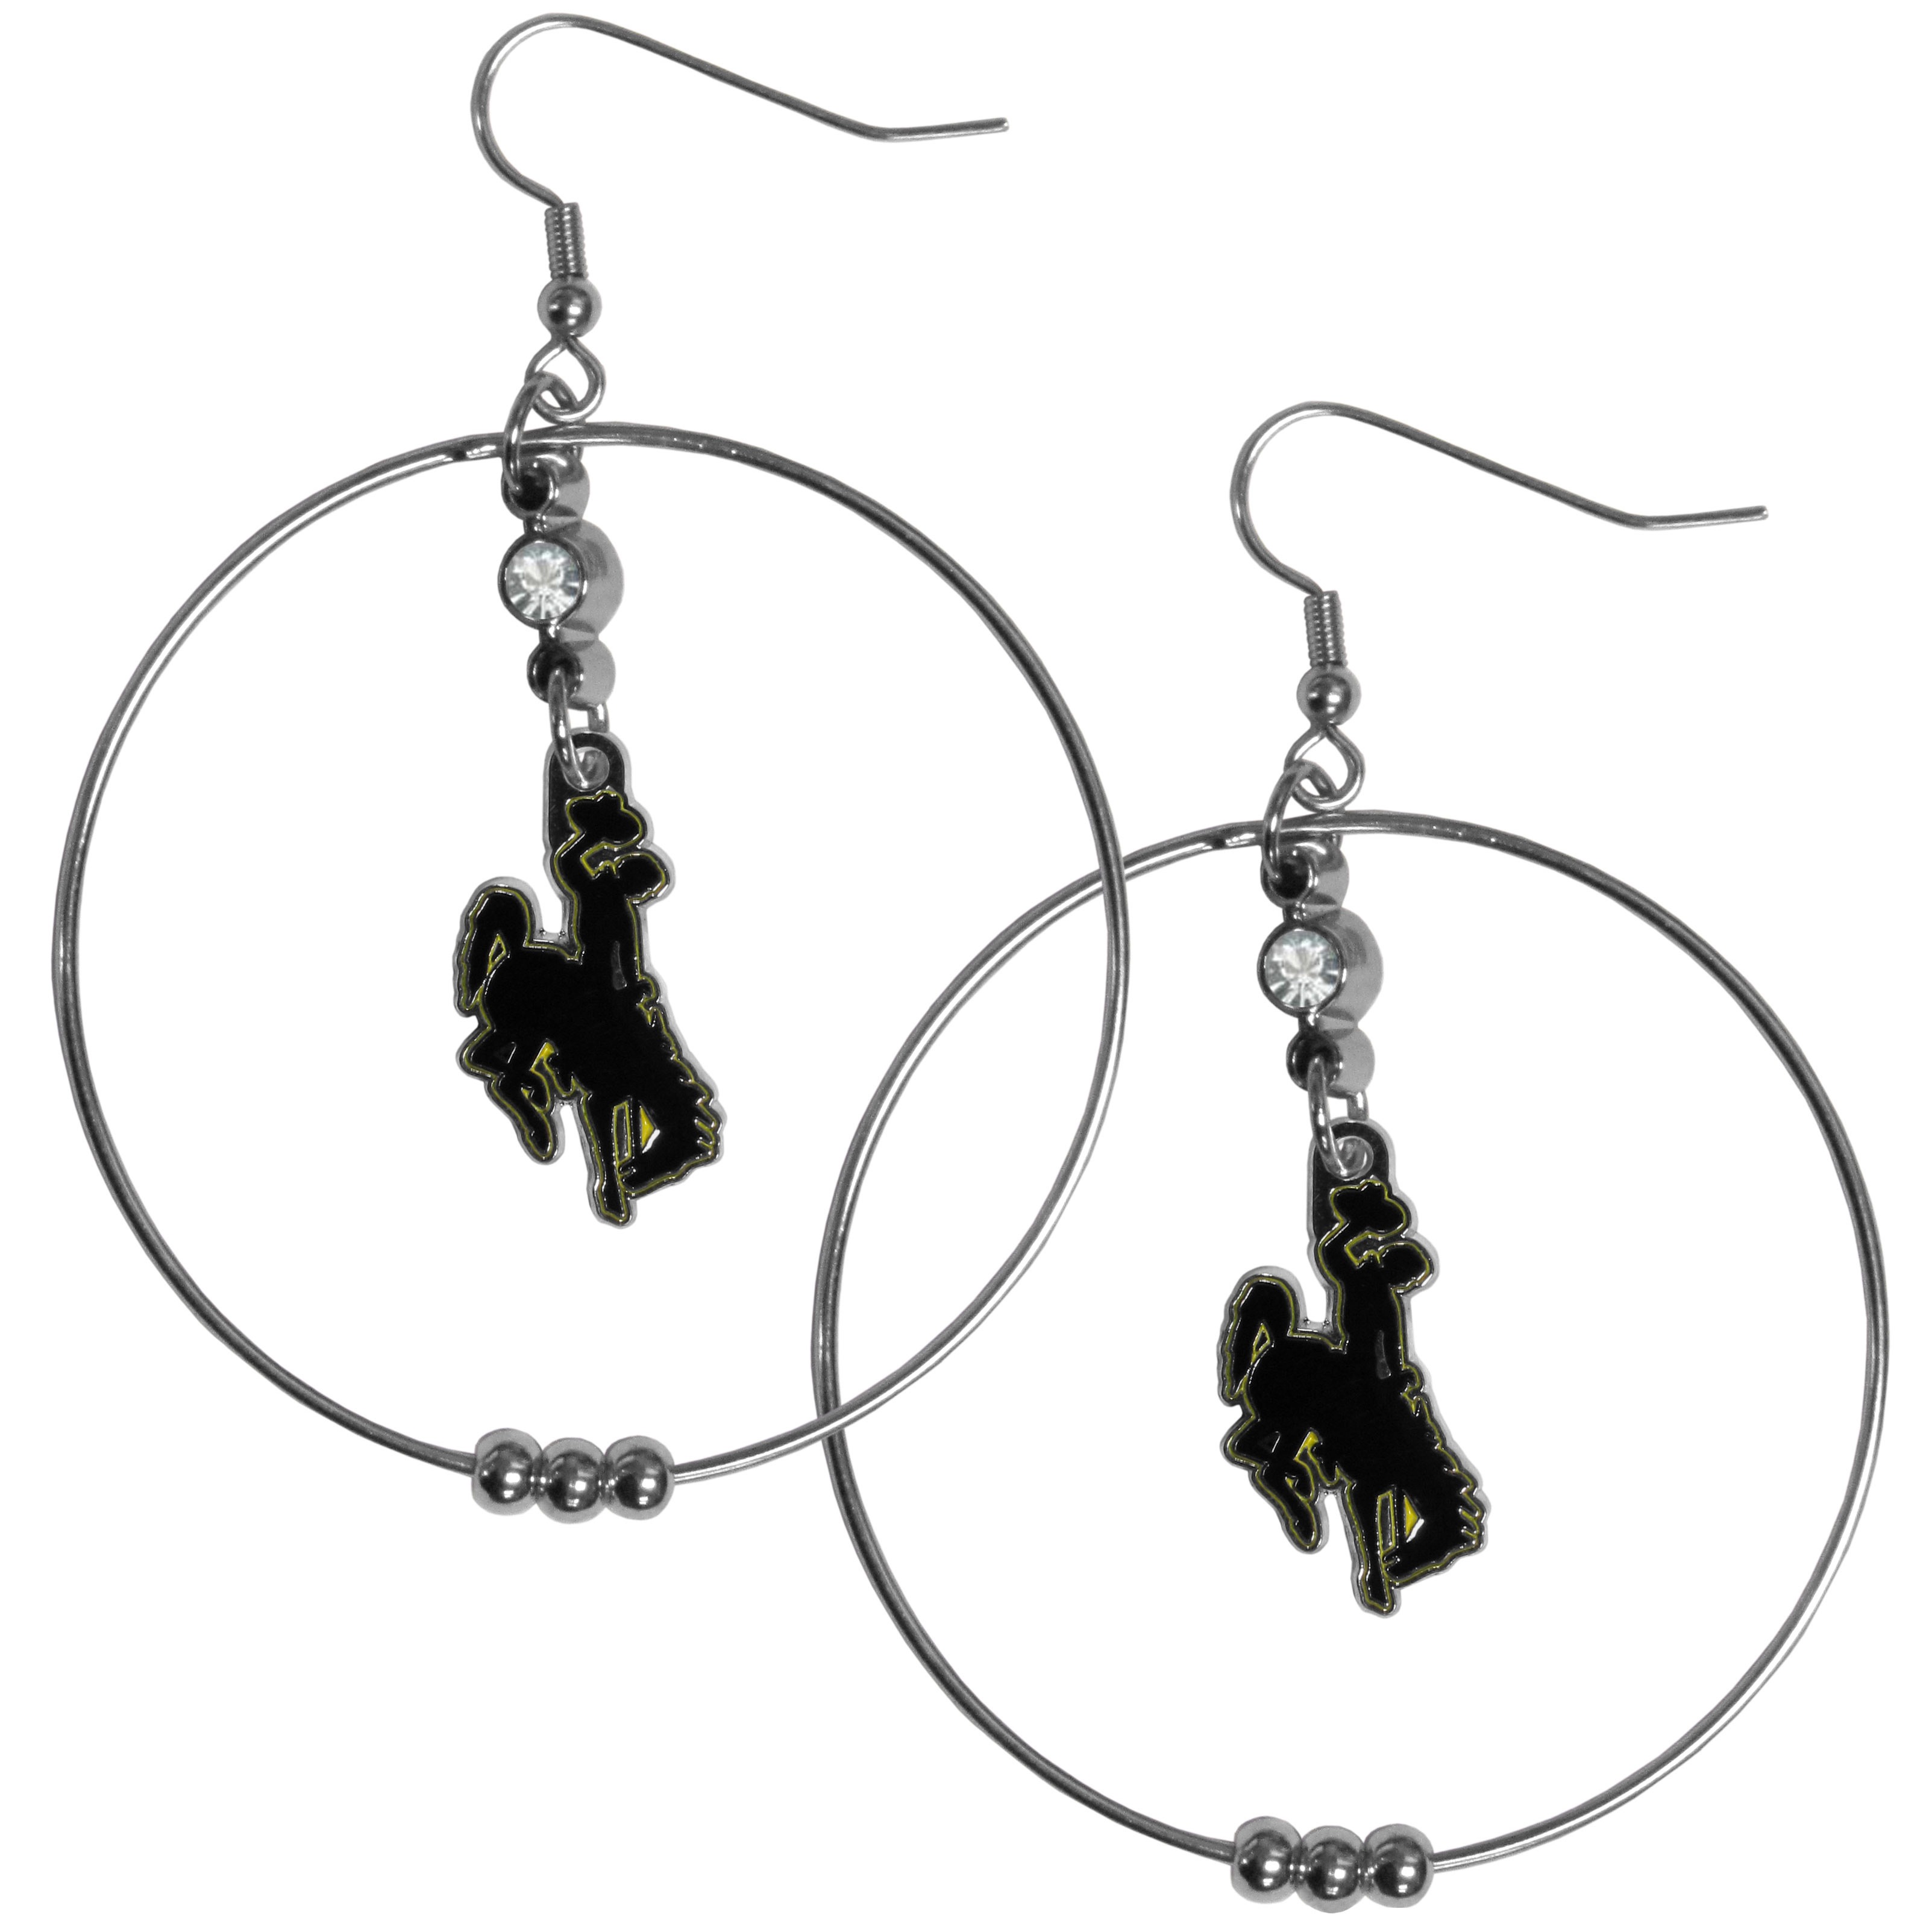 Wyoming Cowboys 2 Inch Hoop Earrings - Our large hoop earrings have a fully cast and enameled Wyoming Cowboy charm with enameled detail and a high polish nickel free chrome finish and rhinestone access. Hypoallergenic fishhook posts.